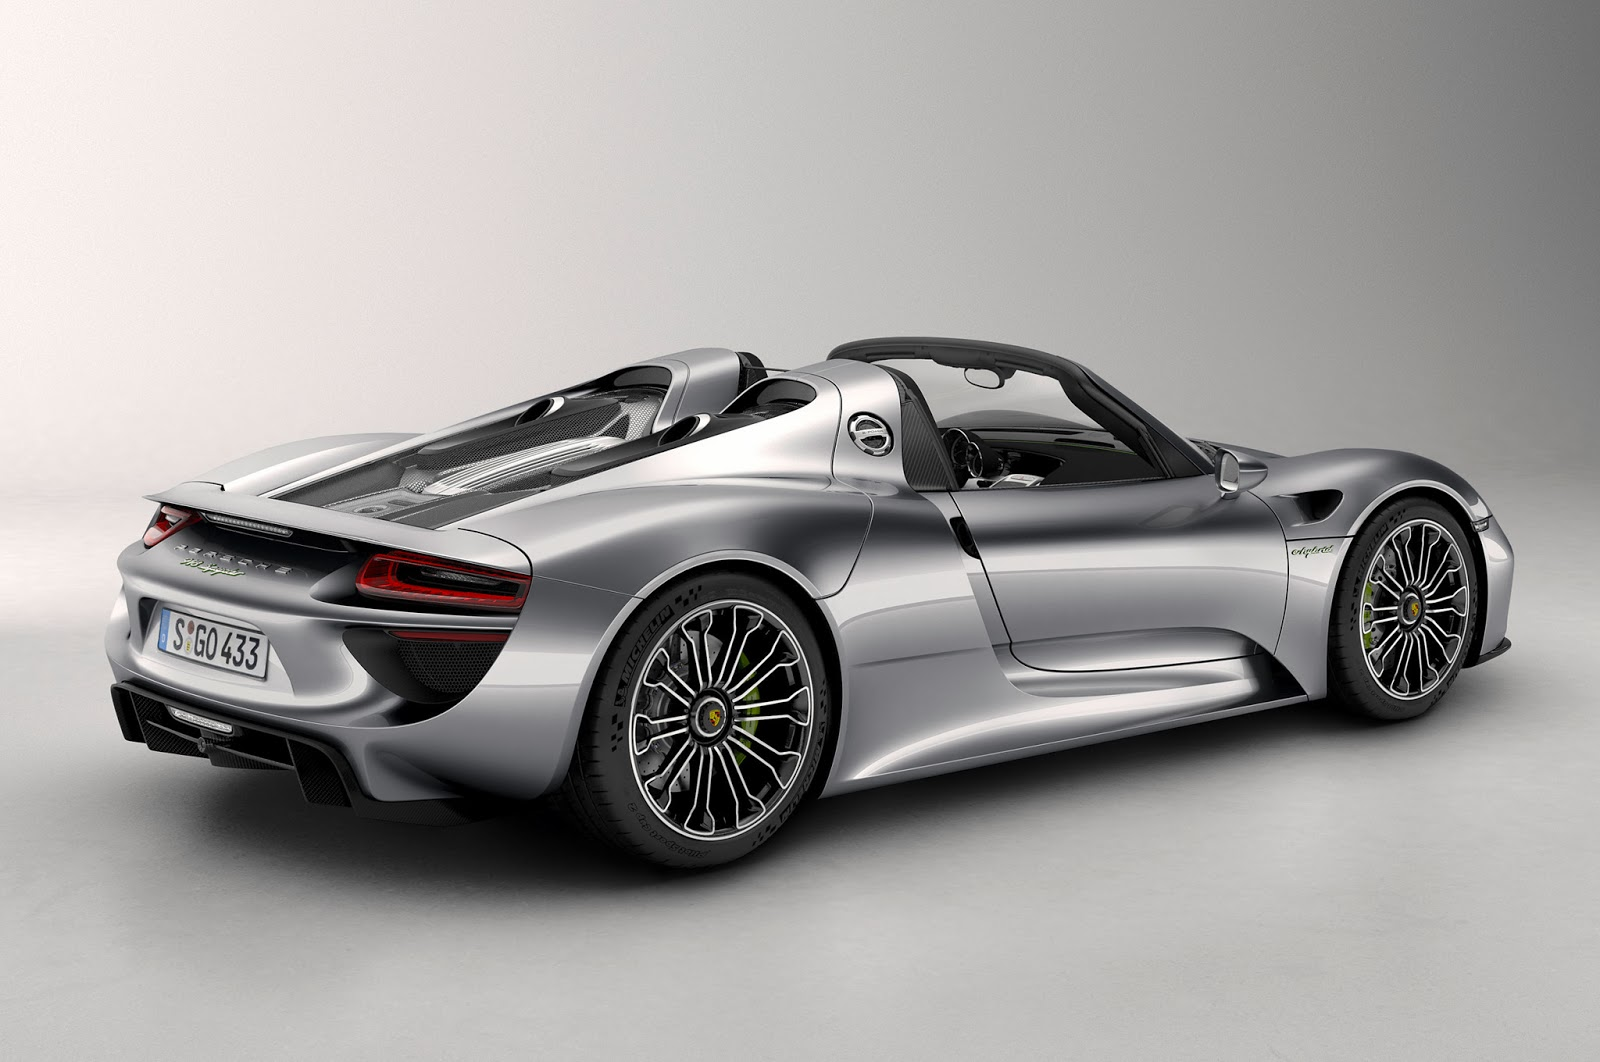 2015 porsche 918 spyder review specs and price auto review 2014. Black Bedroom Furniture Sets. Home Design Ideas